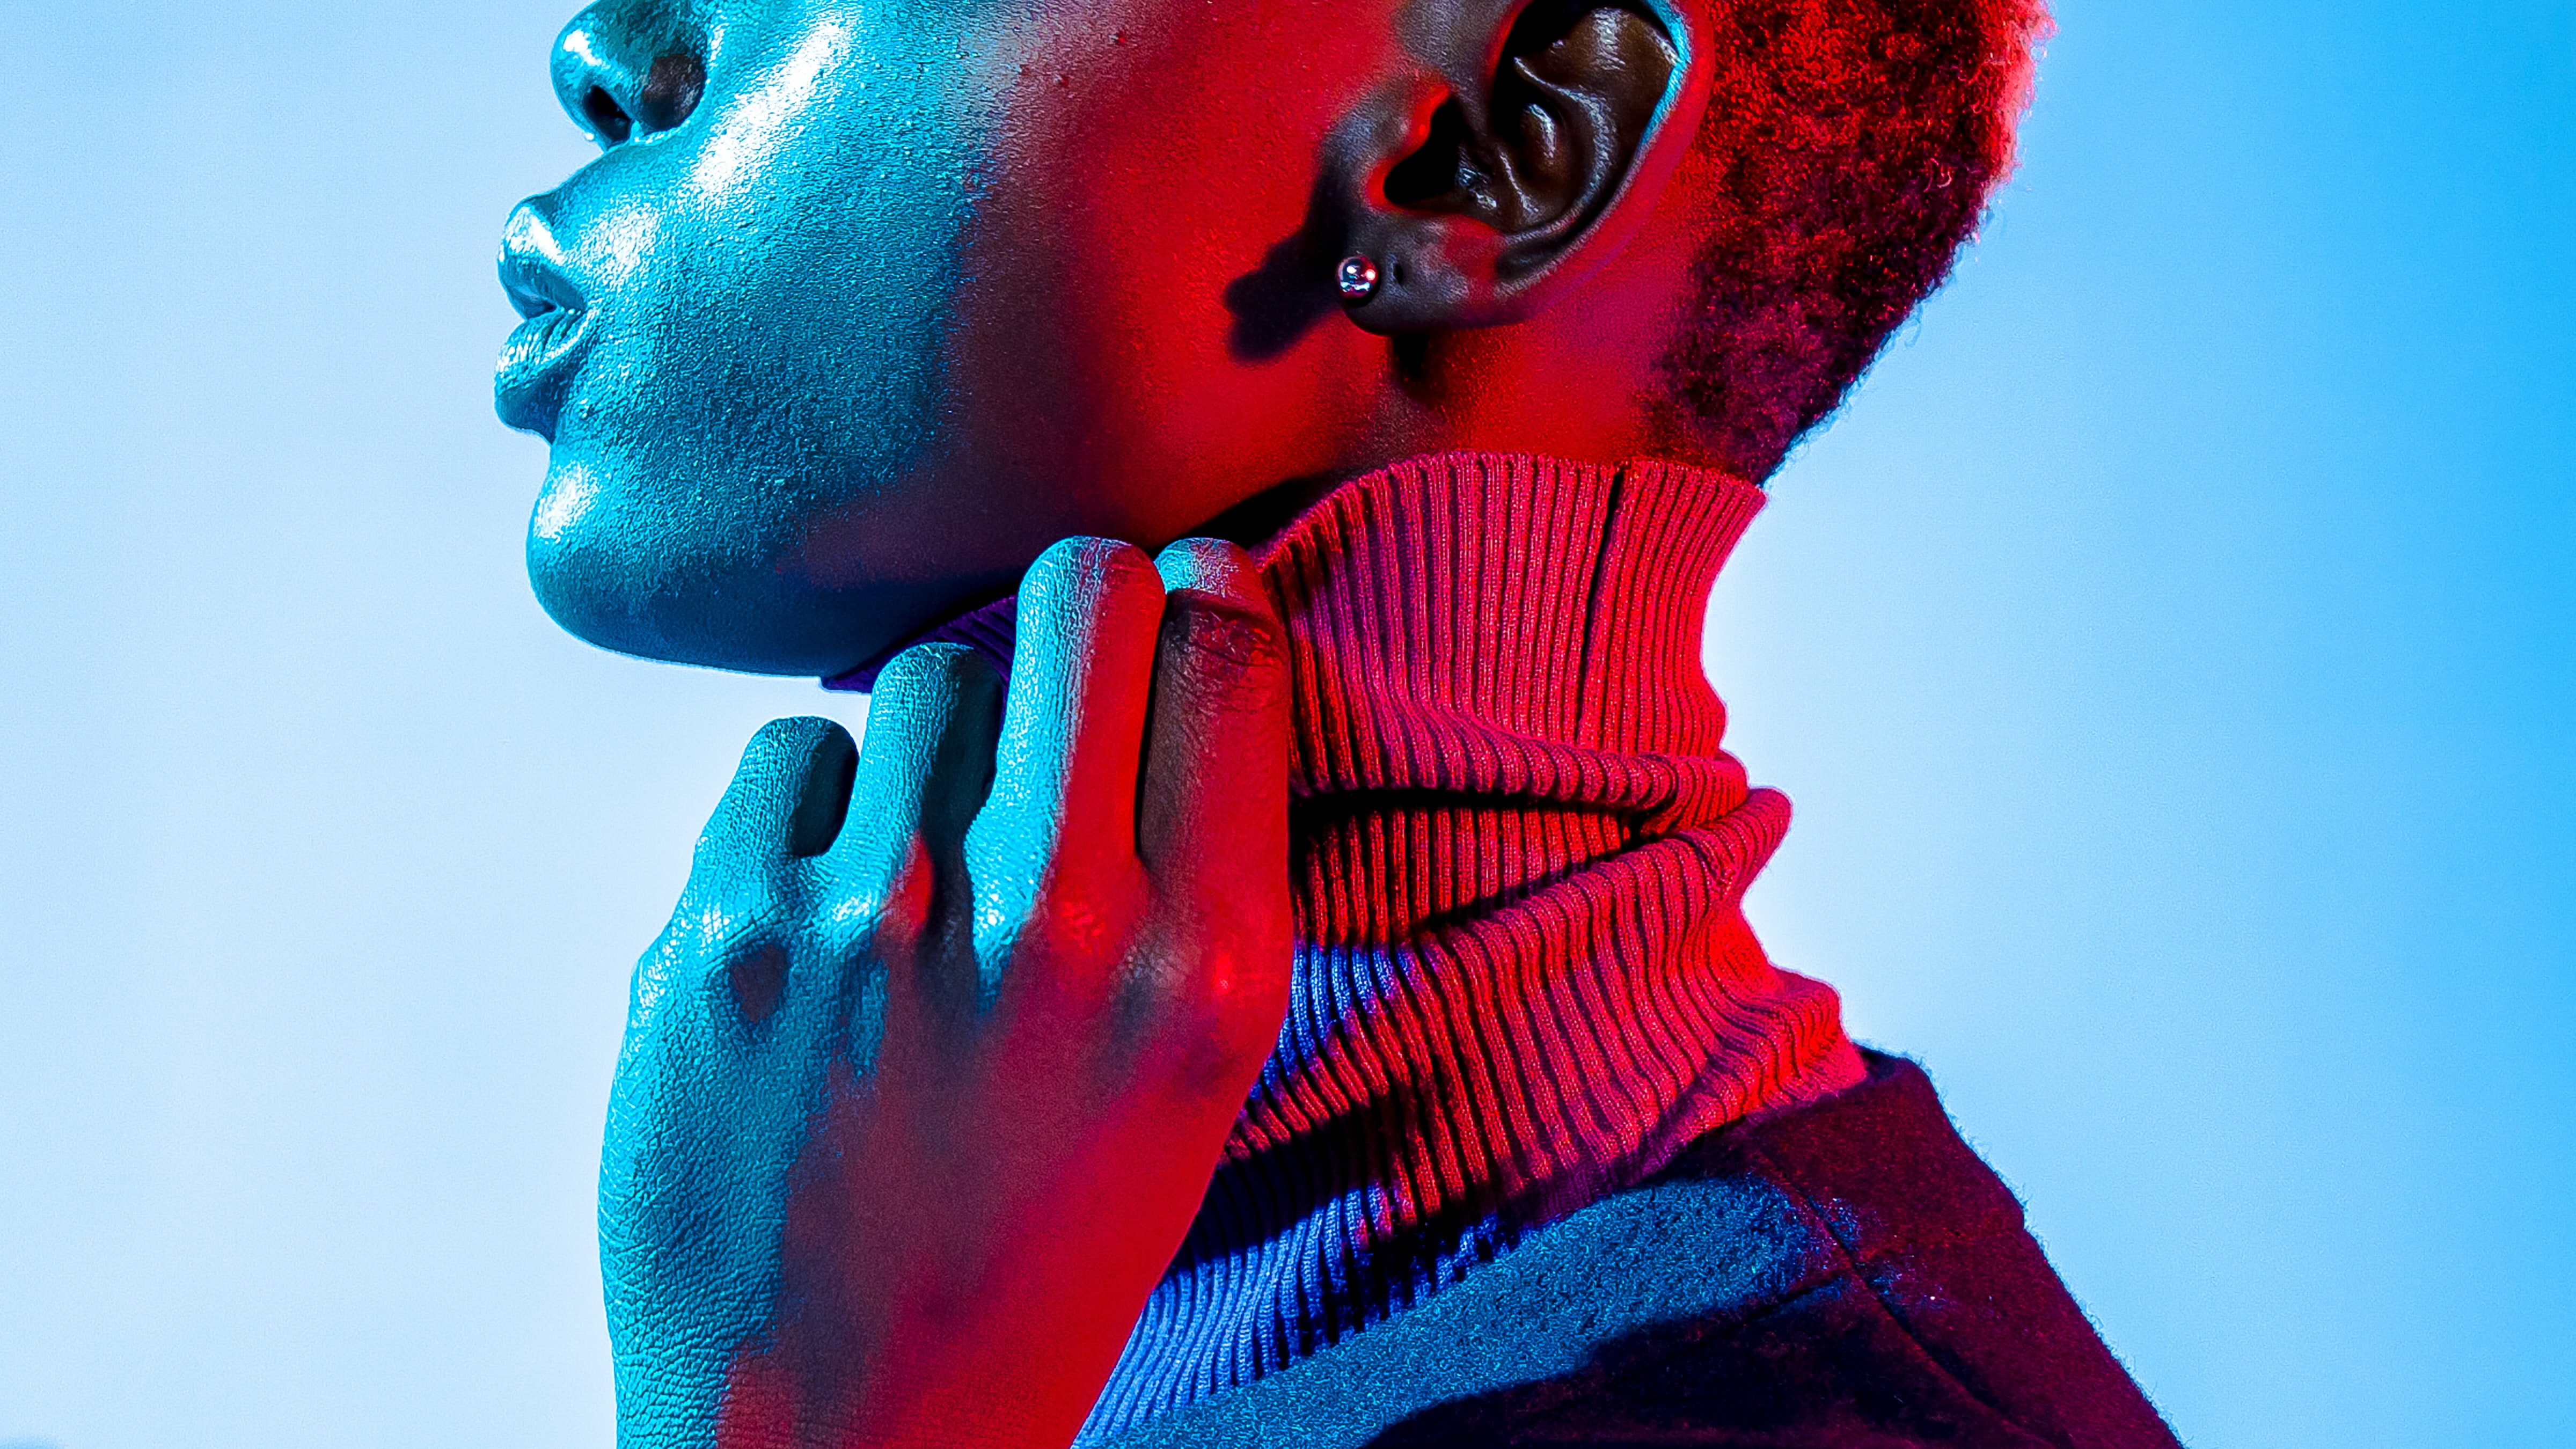 neon shaded contrasted fashion photography